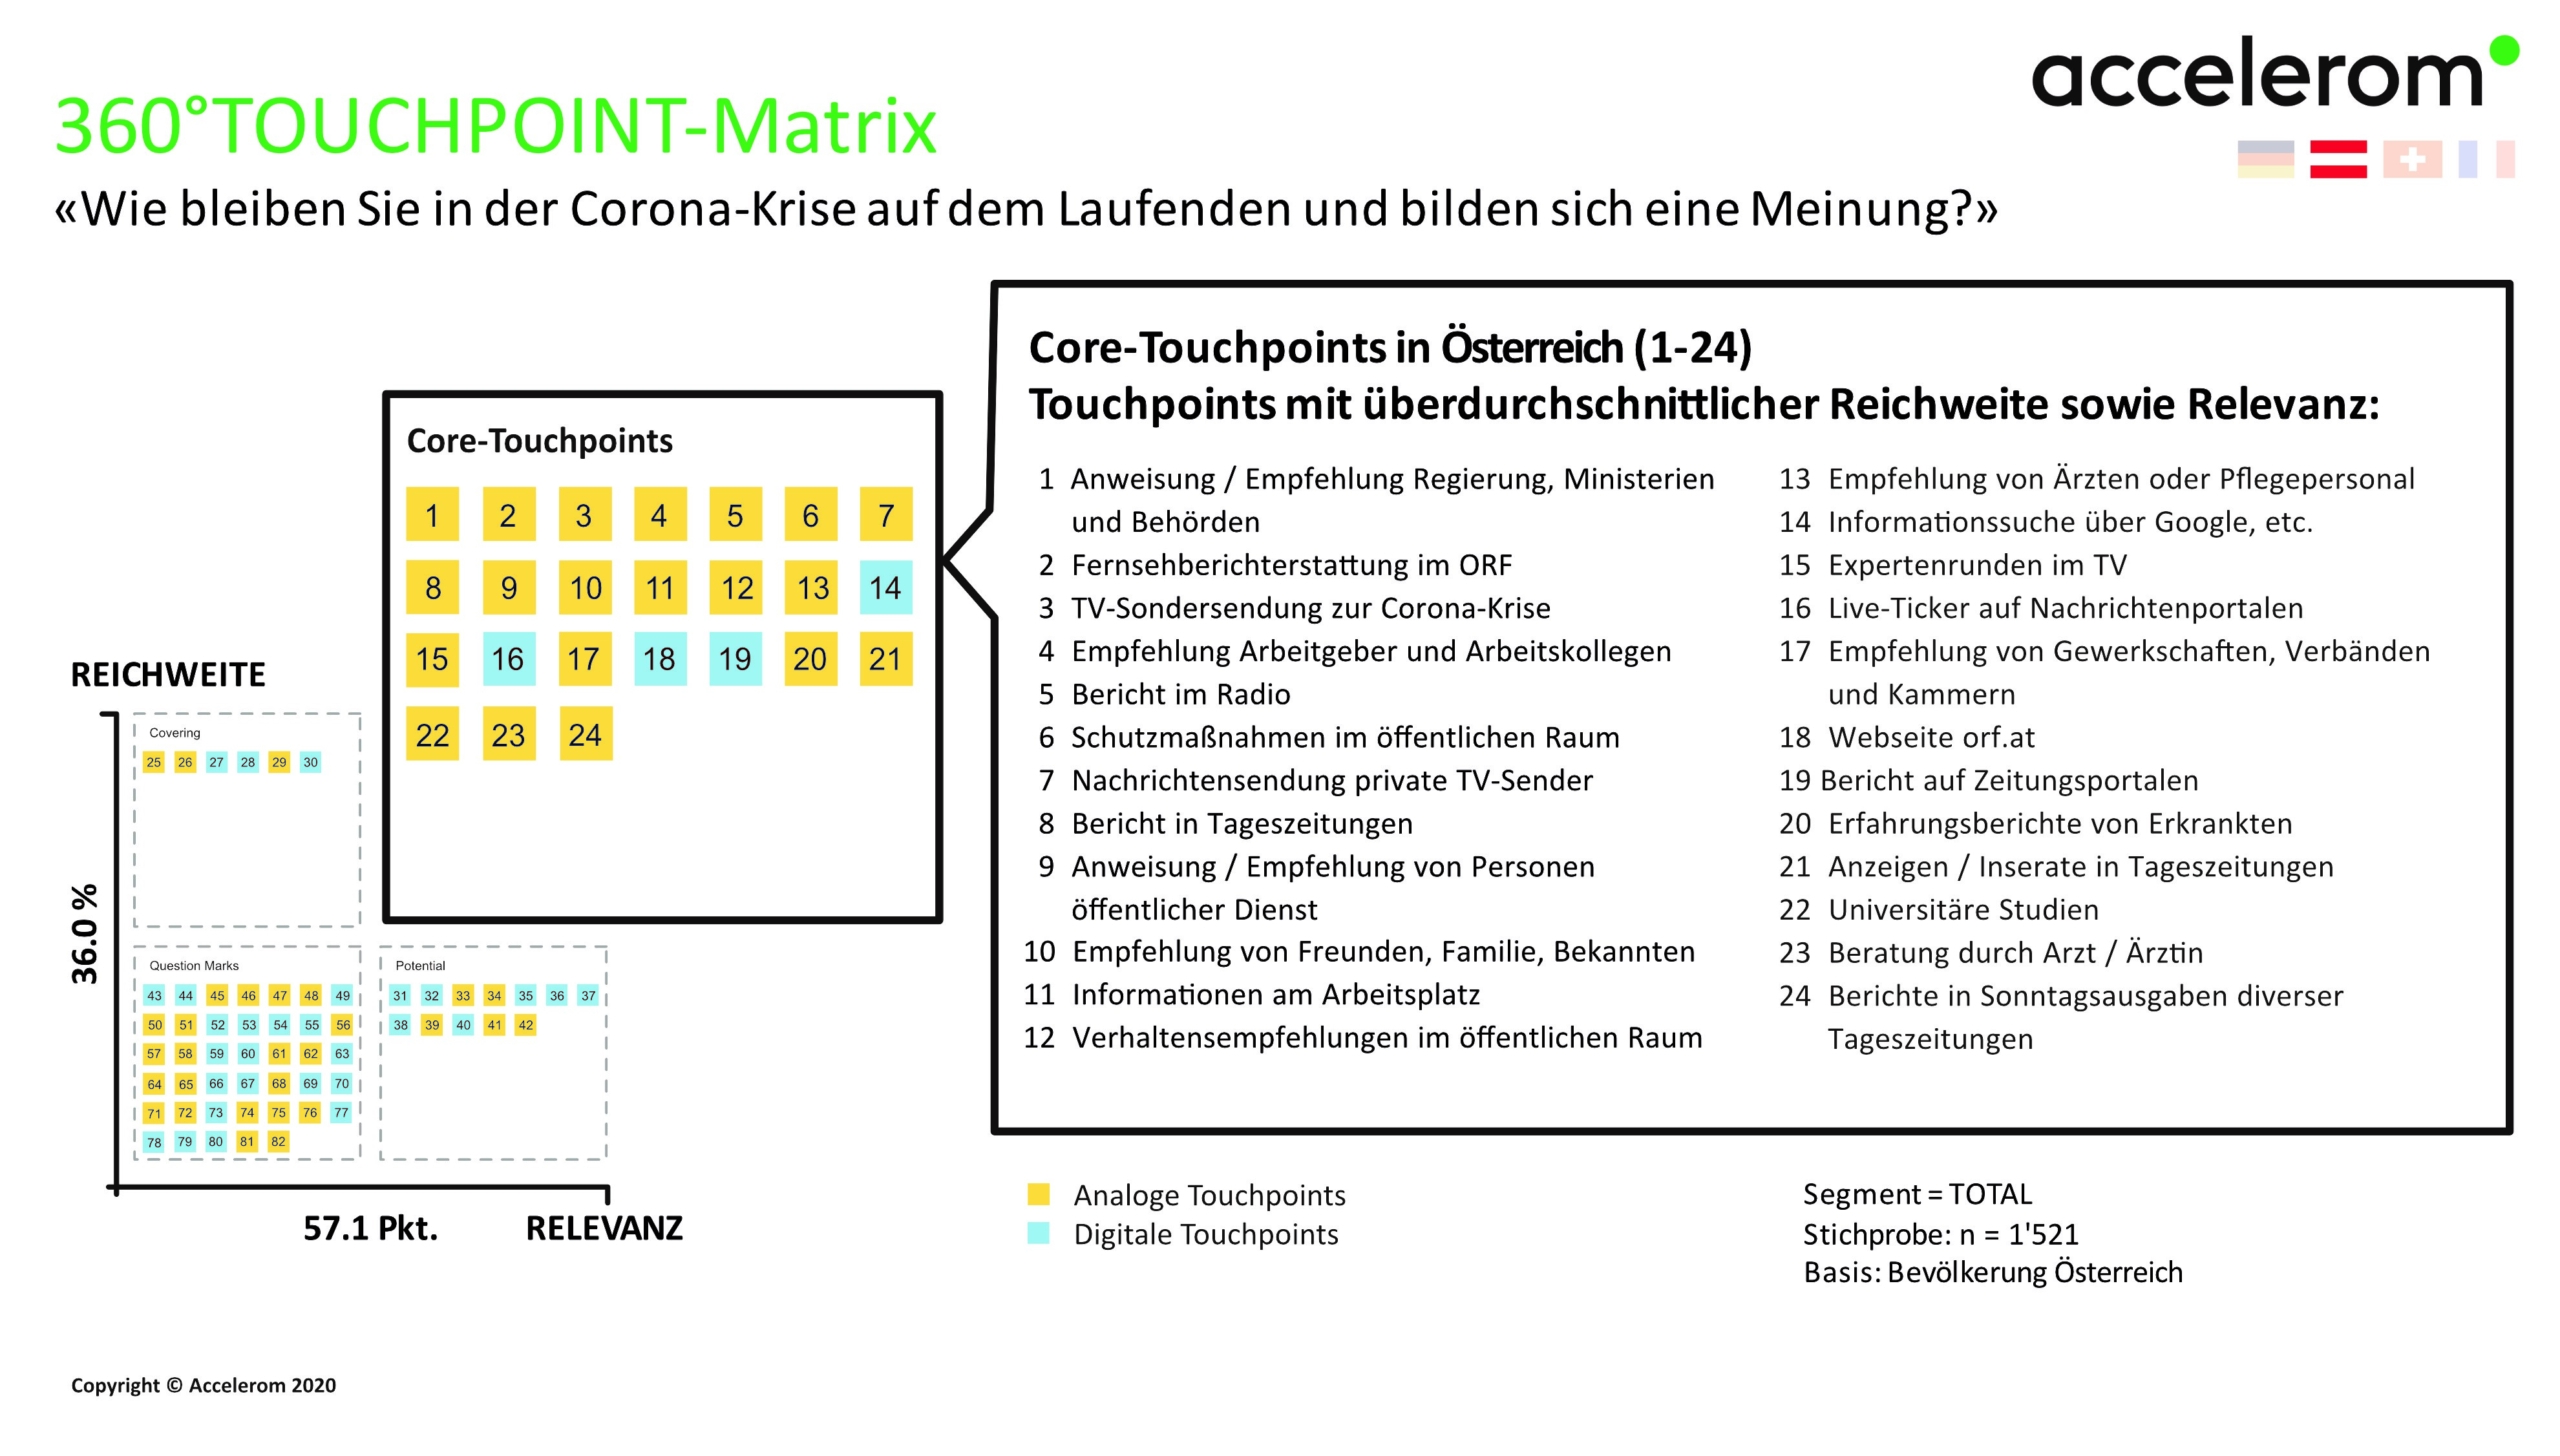 360°TOUCHPOINT-Matrix AT